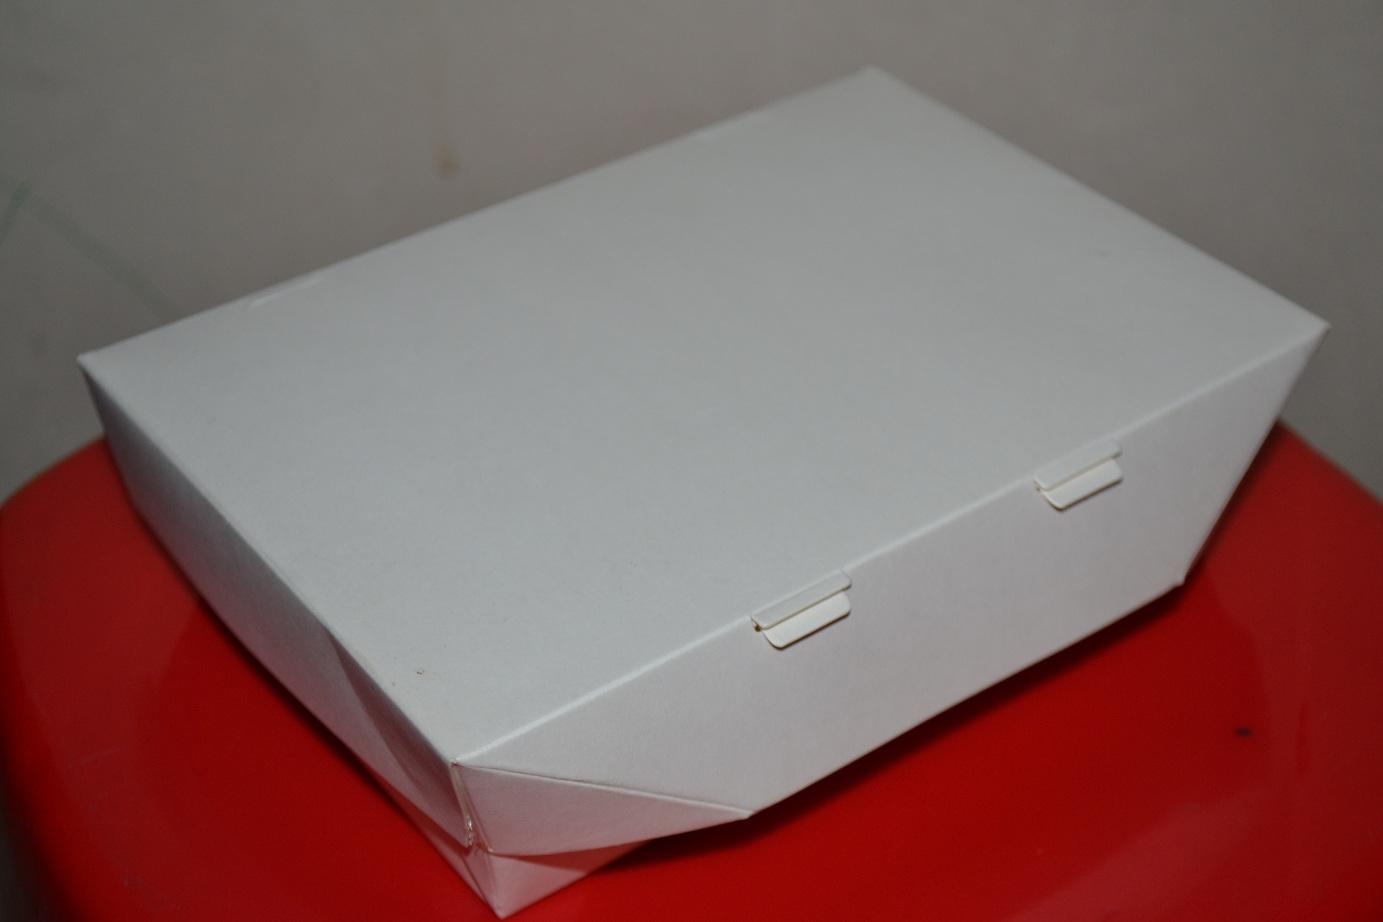 Buy Sell Cheapest Paper Lunch Box Best Quality Product Deals Merk Ergopak Lunchbox M Polos